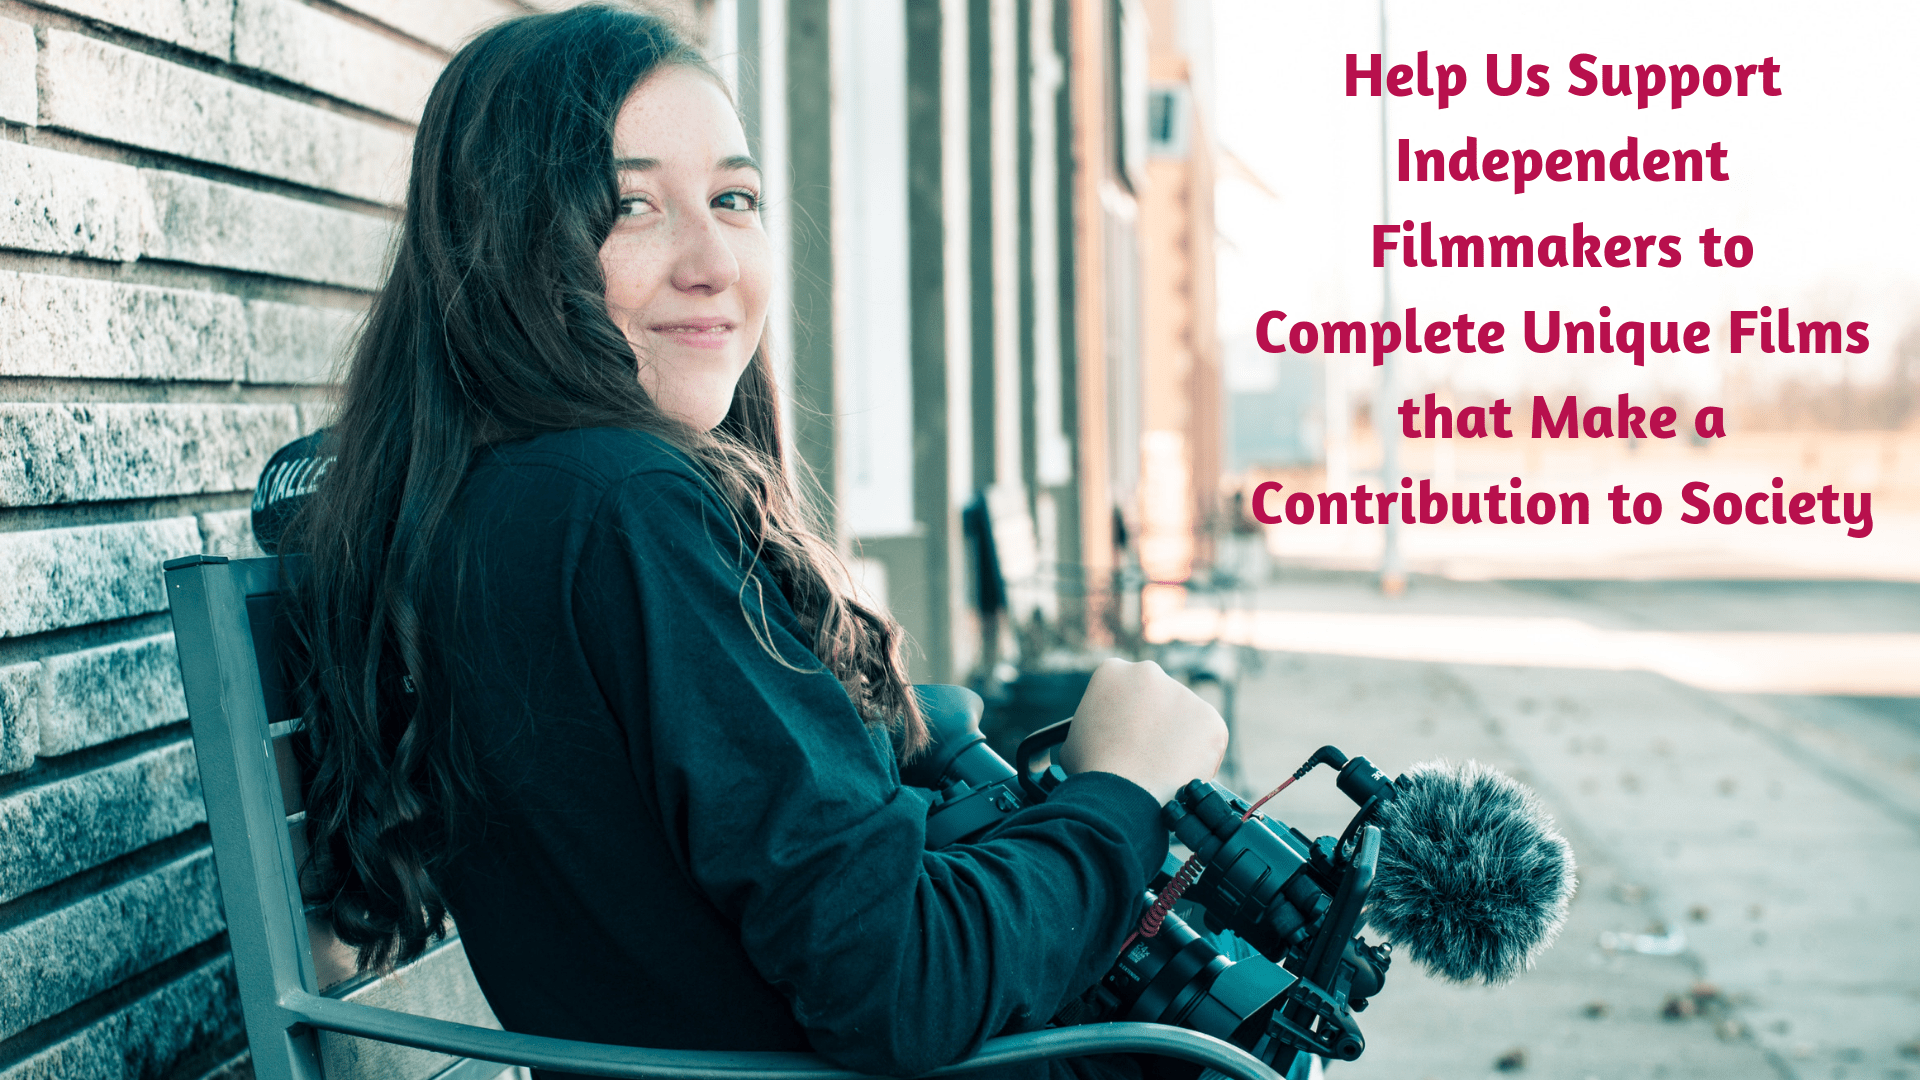 Donate to From the Heart Productions